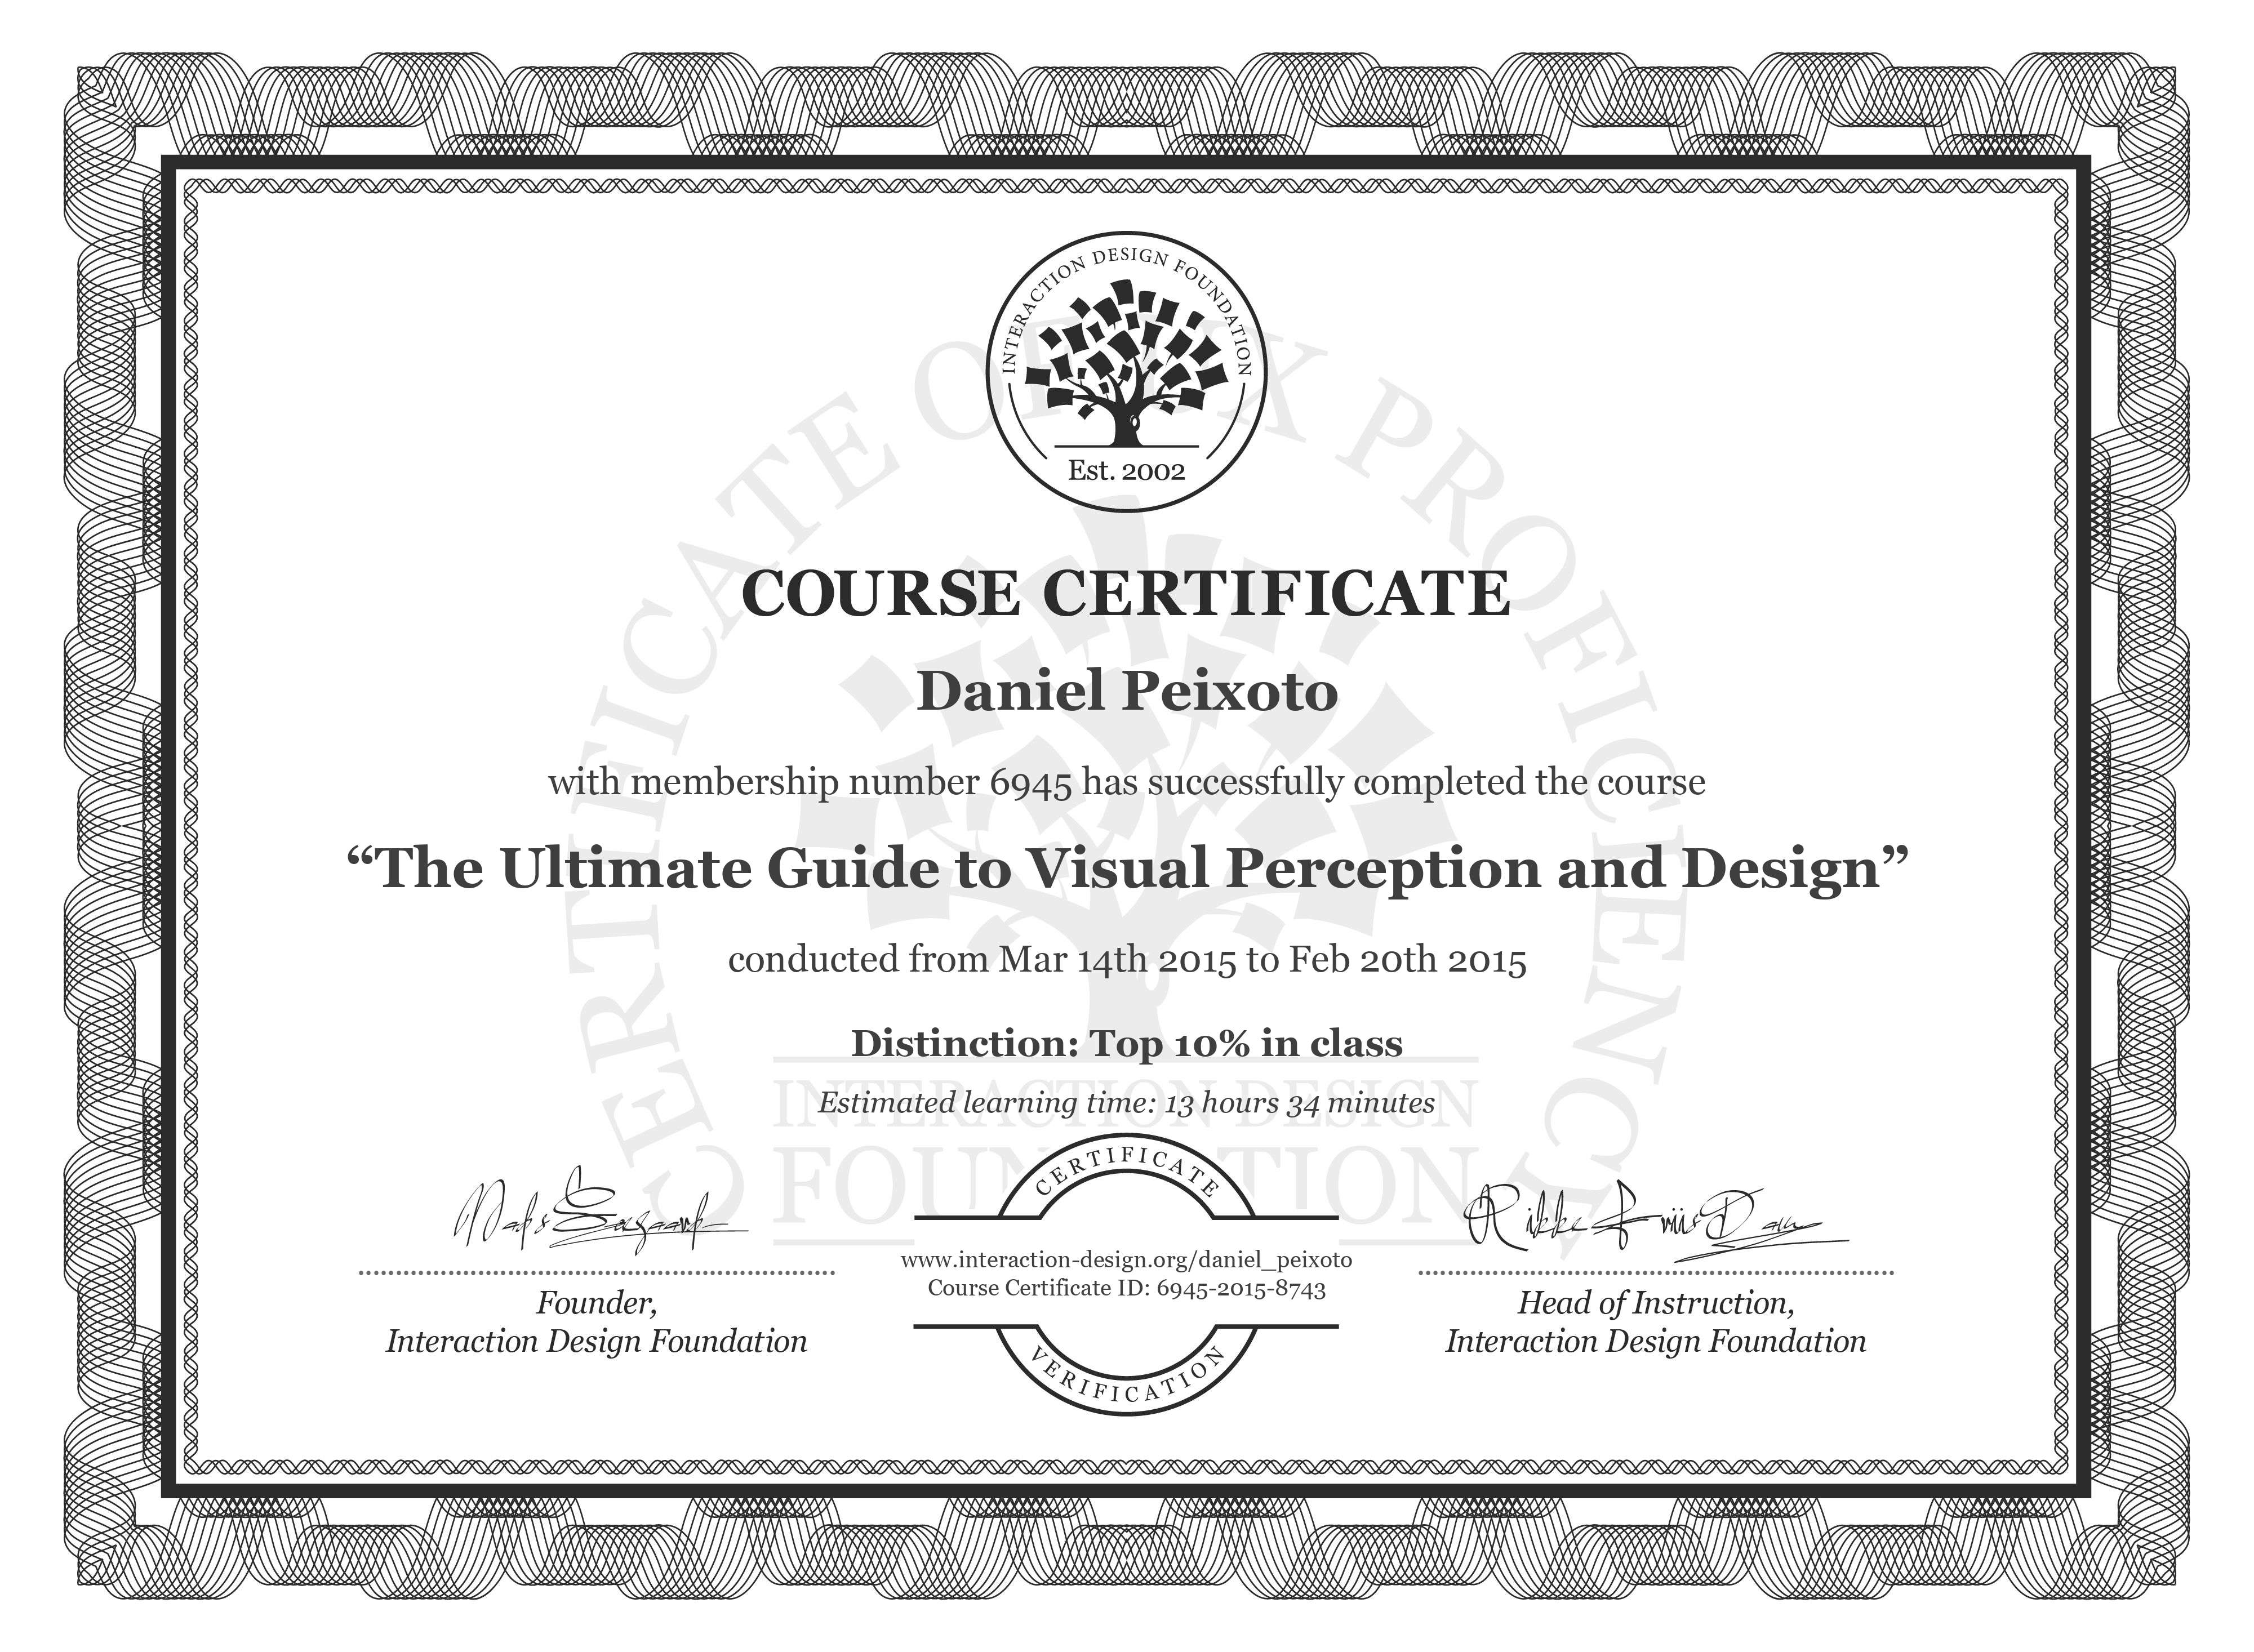 Daniel Peixoto: Course Certificate - The Ultimate Guide to Visual Perception and Design